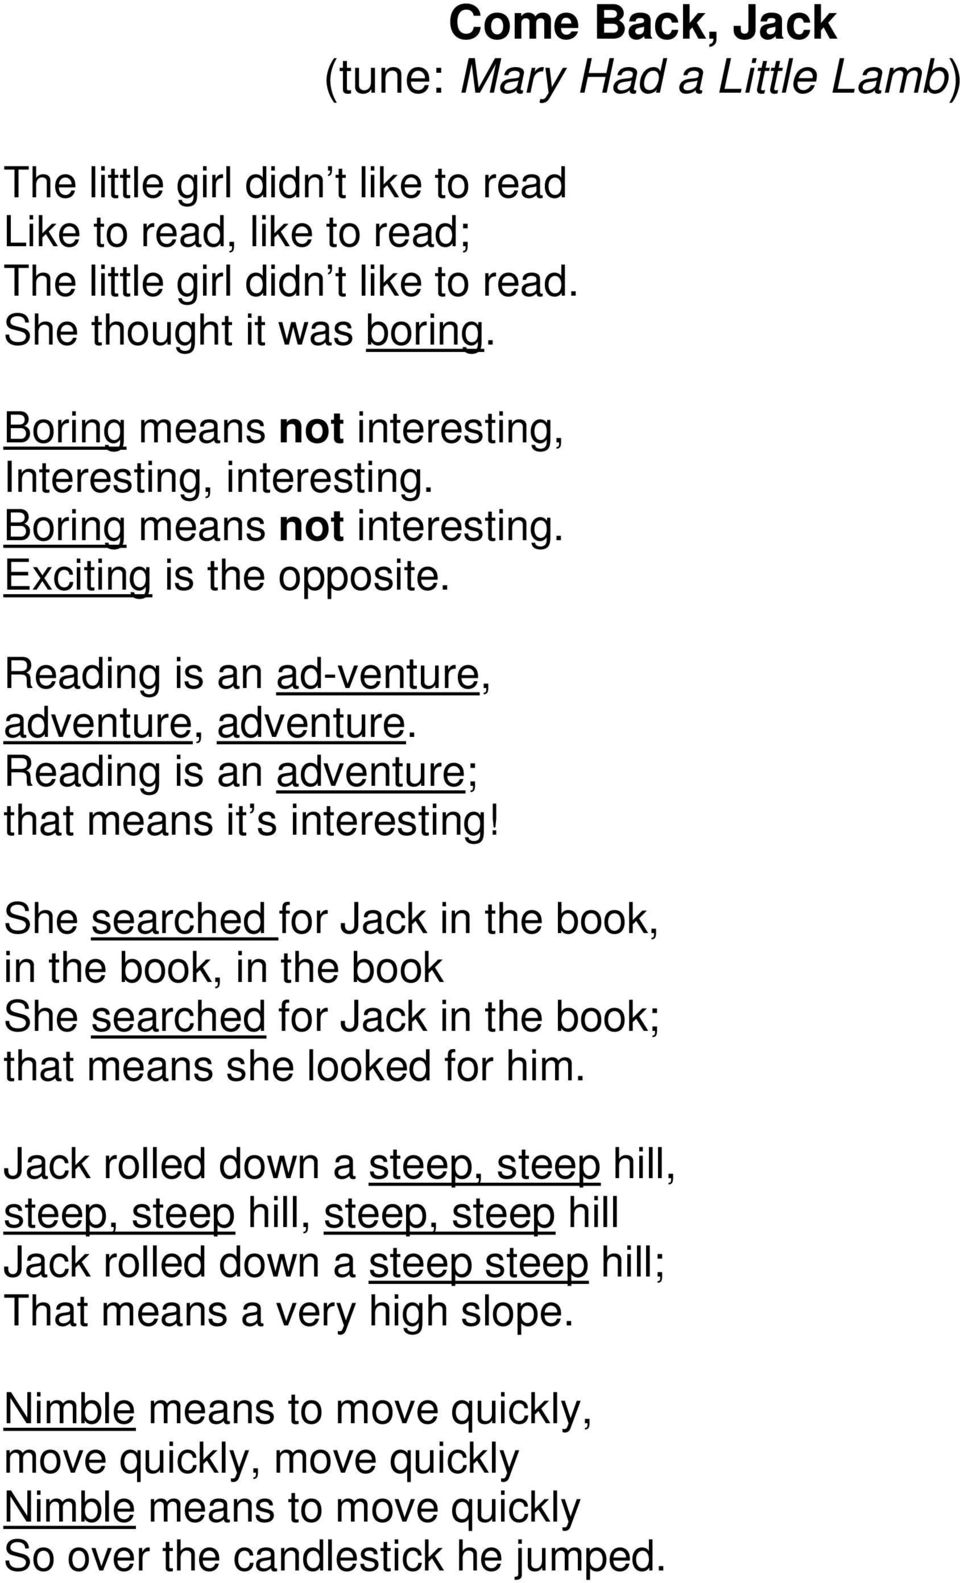 Come Back, Jack (tune: Mary Had a Little Lamb) She searched for Jack in the book, in the book, in the book She searched for Jack in the book; that means she looked for him.